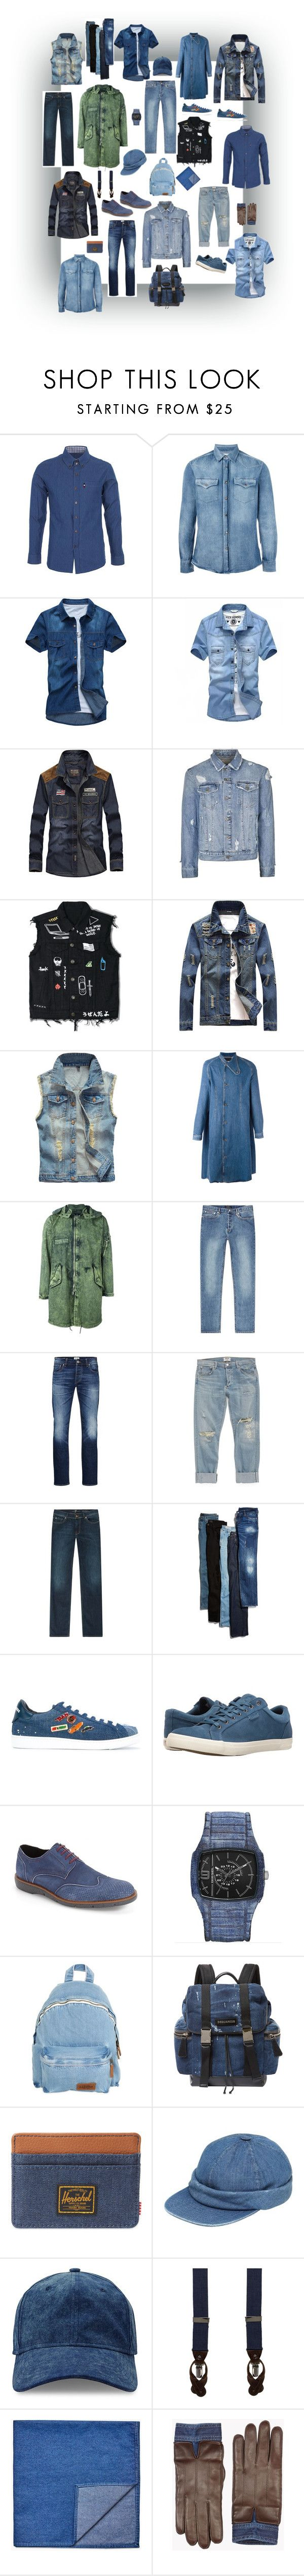 """JEANS-MEN"" by dasha-gushchin ❤ liked on Polyvore featuring Brunello Cucinelli, Topman, J.W. Anderson, stone island shadow project, A.P.C., Jack & Jones, AGOLDE, 7 For All Mankind, Dsquared2 and Polo Ralph Lauren"